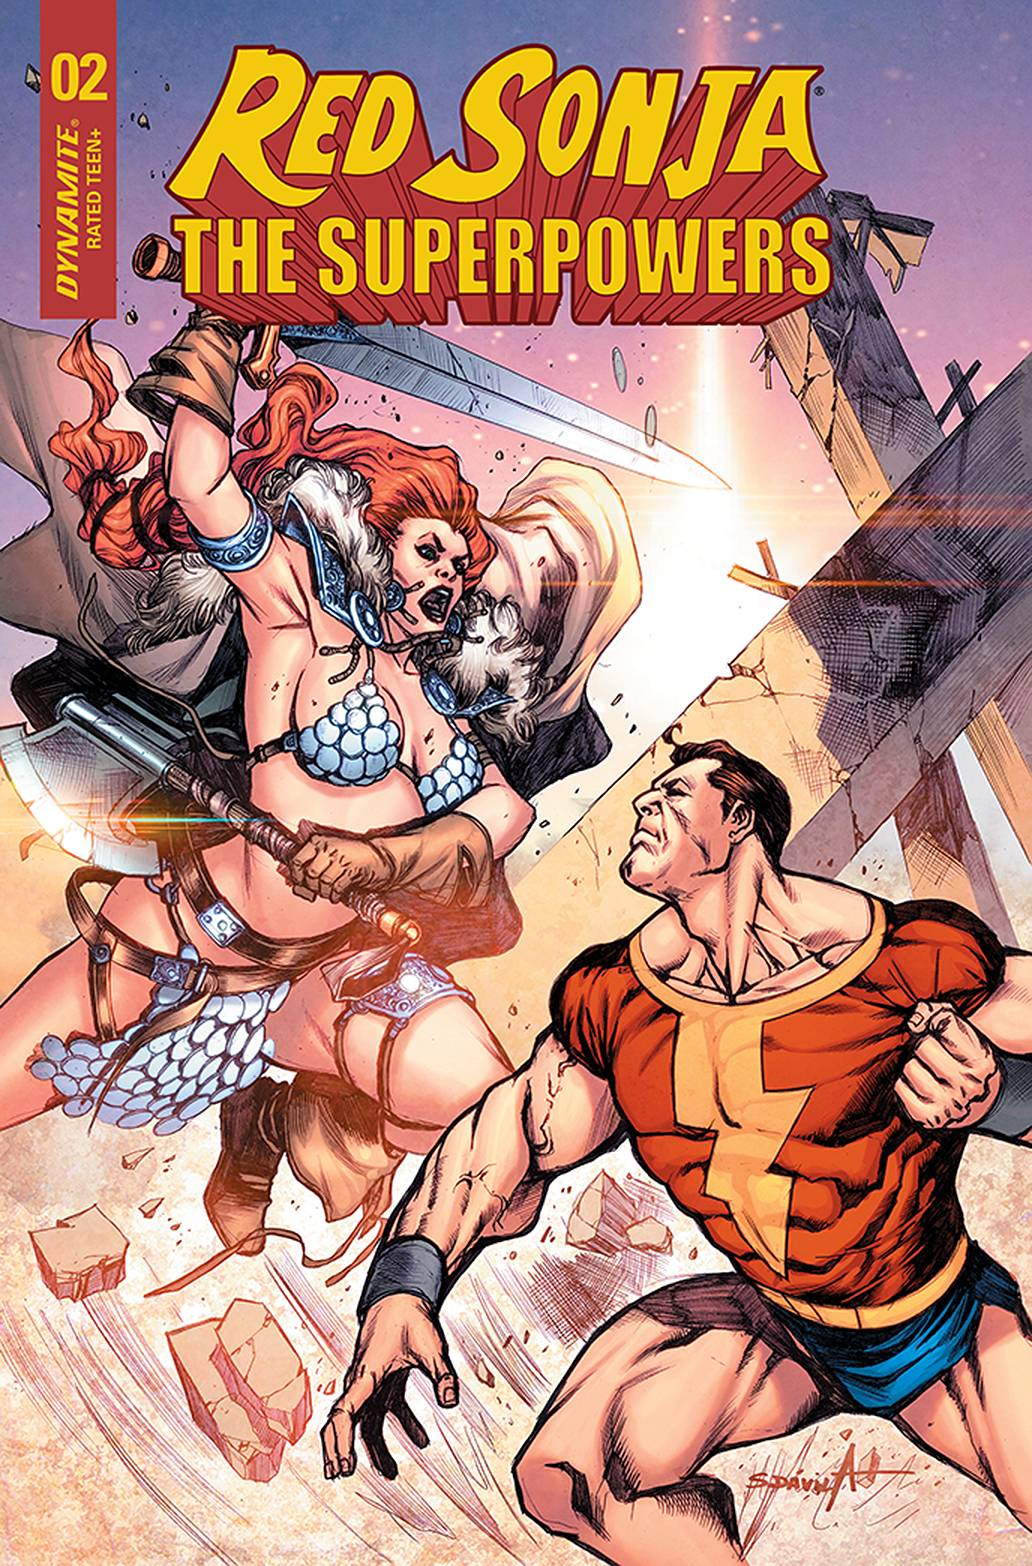 RED SONJA THE SUPERPOWERS #2 15 COPY DAVILA INCV